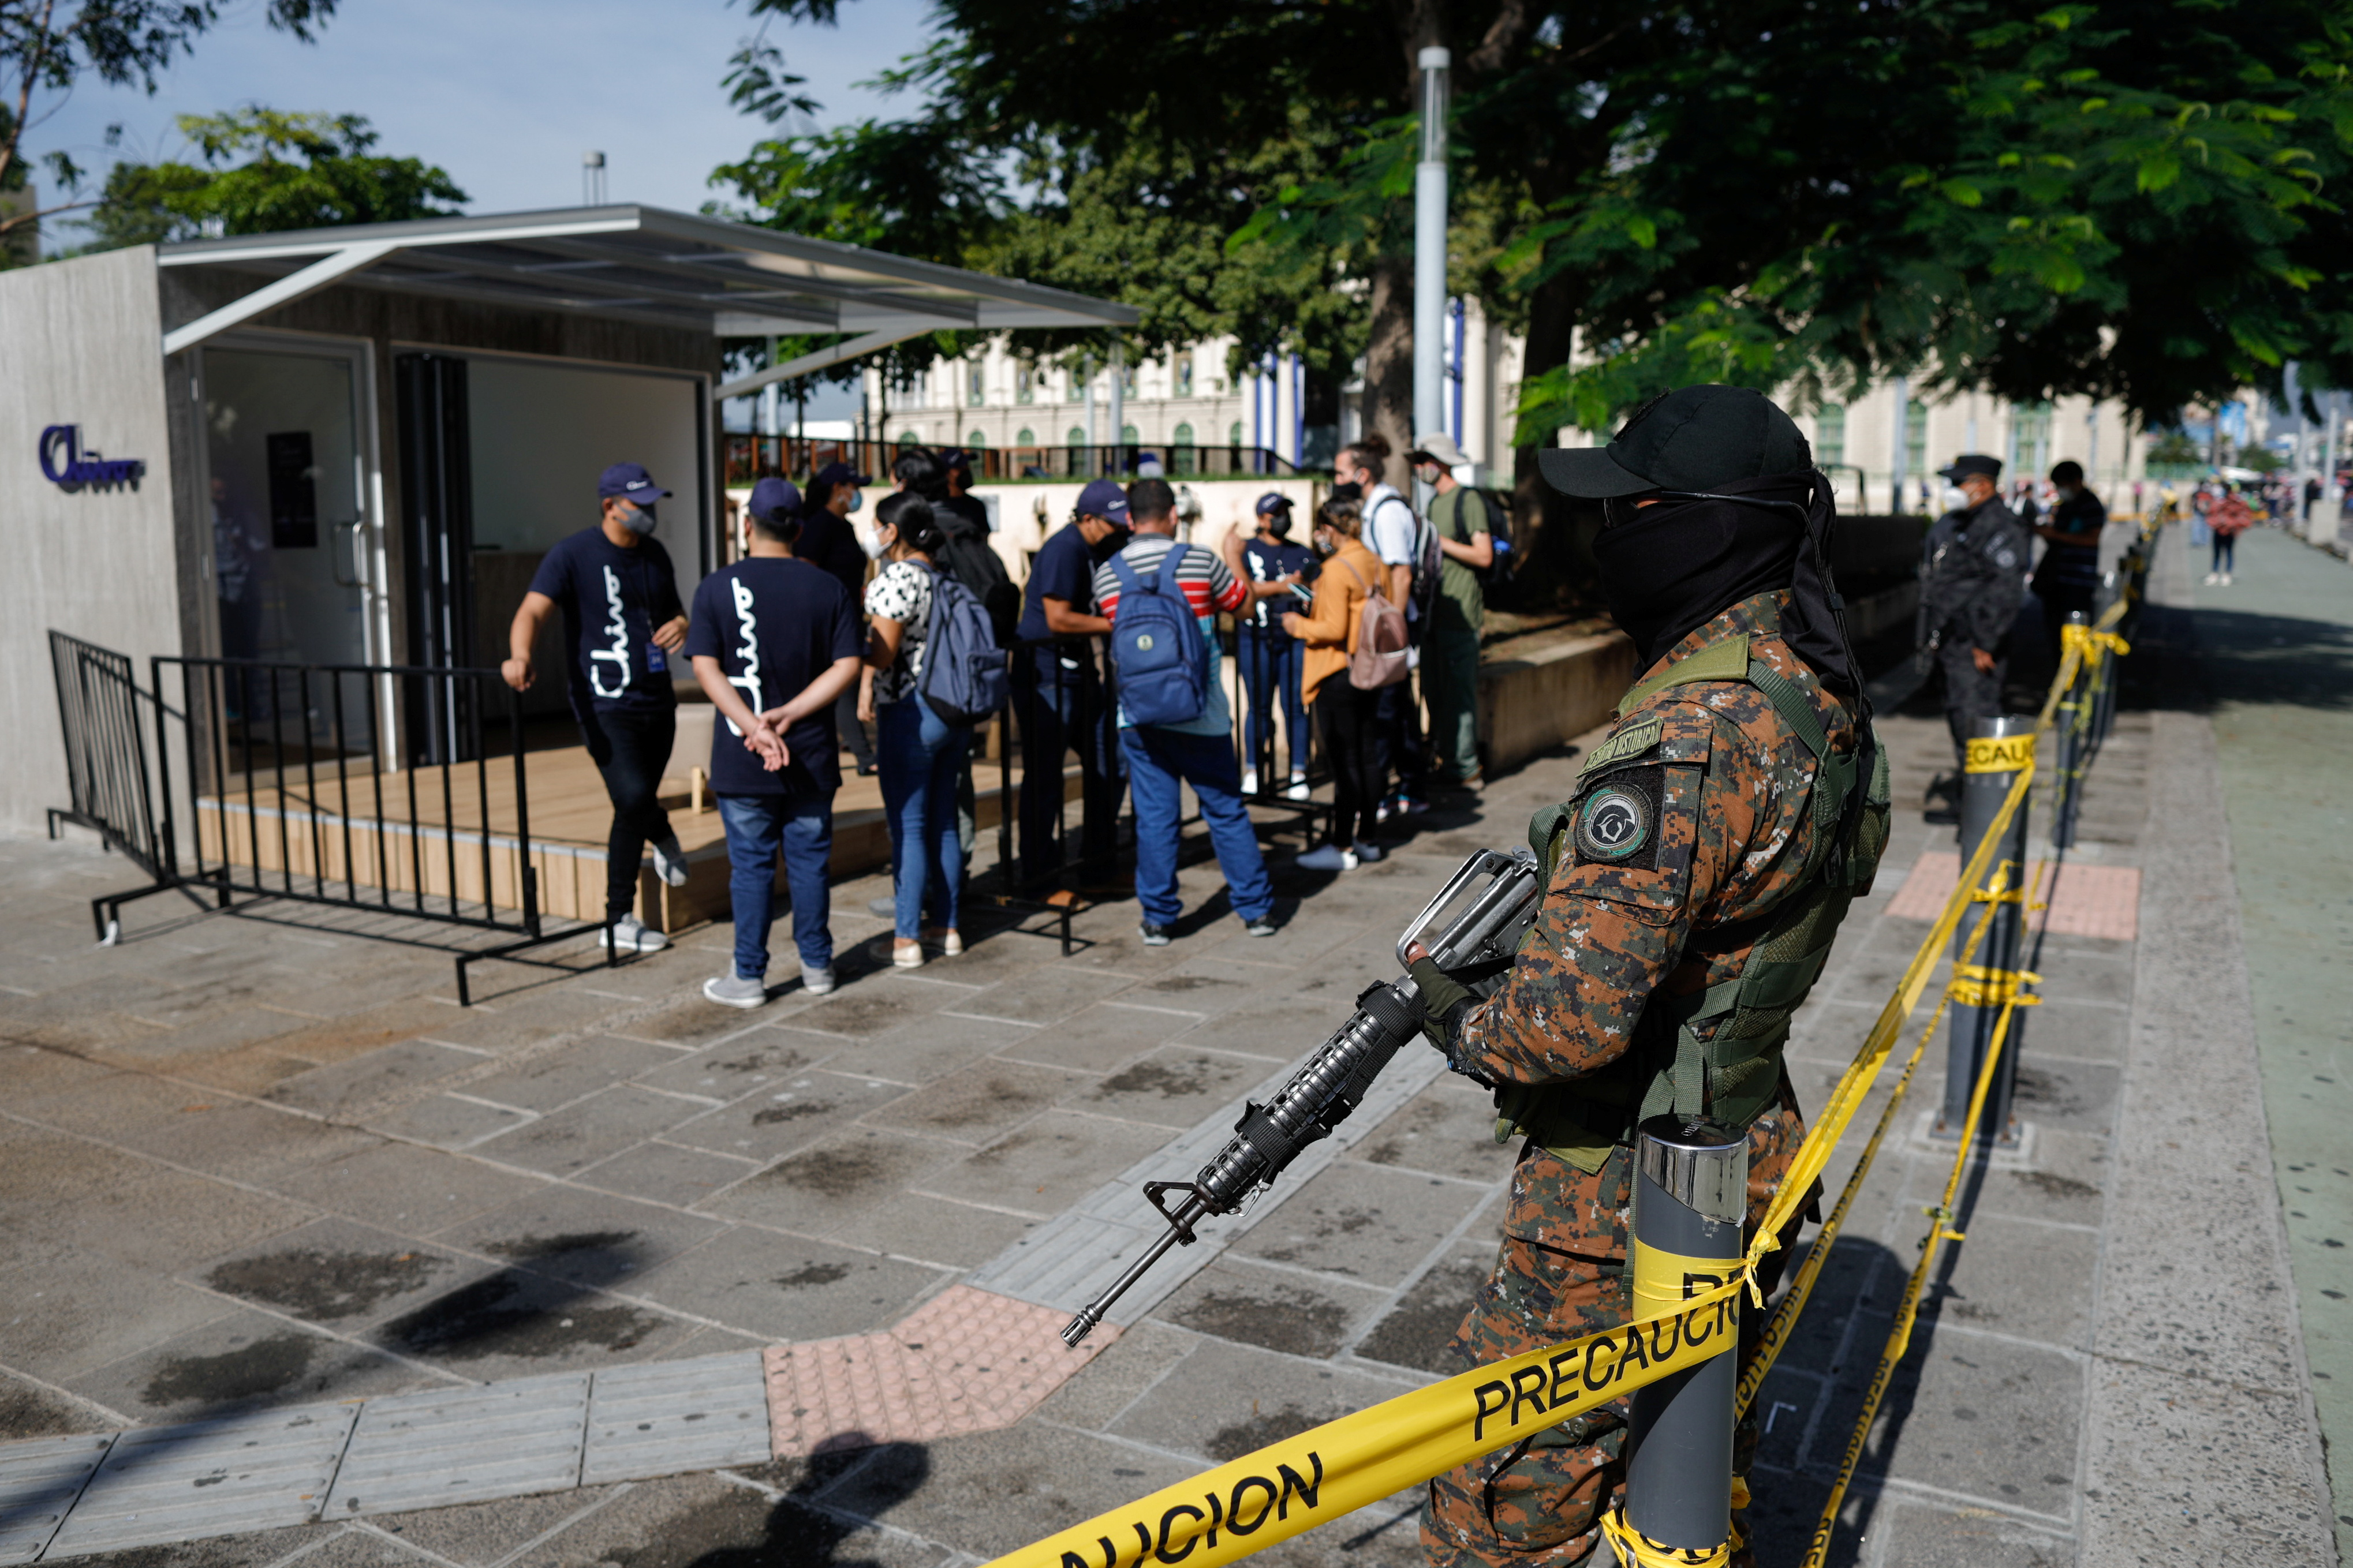 A soldier stands guard while people ask for information about the use of Bitcoin, outside an ATM of Chivo wallet, a Bitcoin wallet that Salvadoran government is launching for the use of Bitcoin as a legal tender, in San Salvador, El Salvador, September 7, 2021. REUTERS/Jose Cabezas